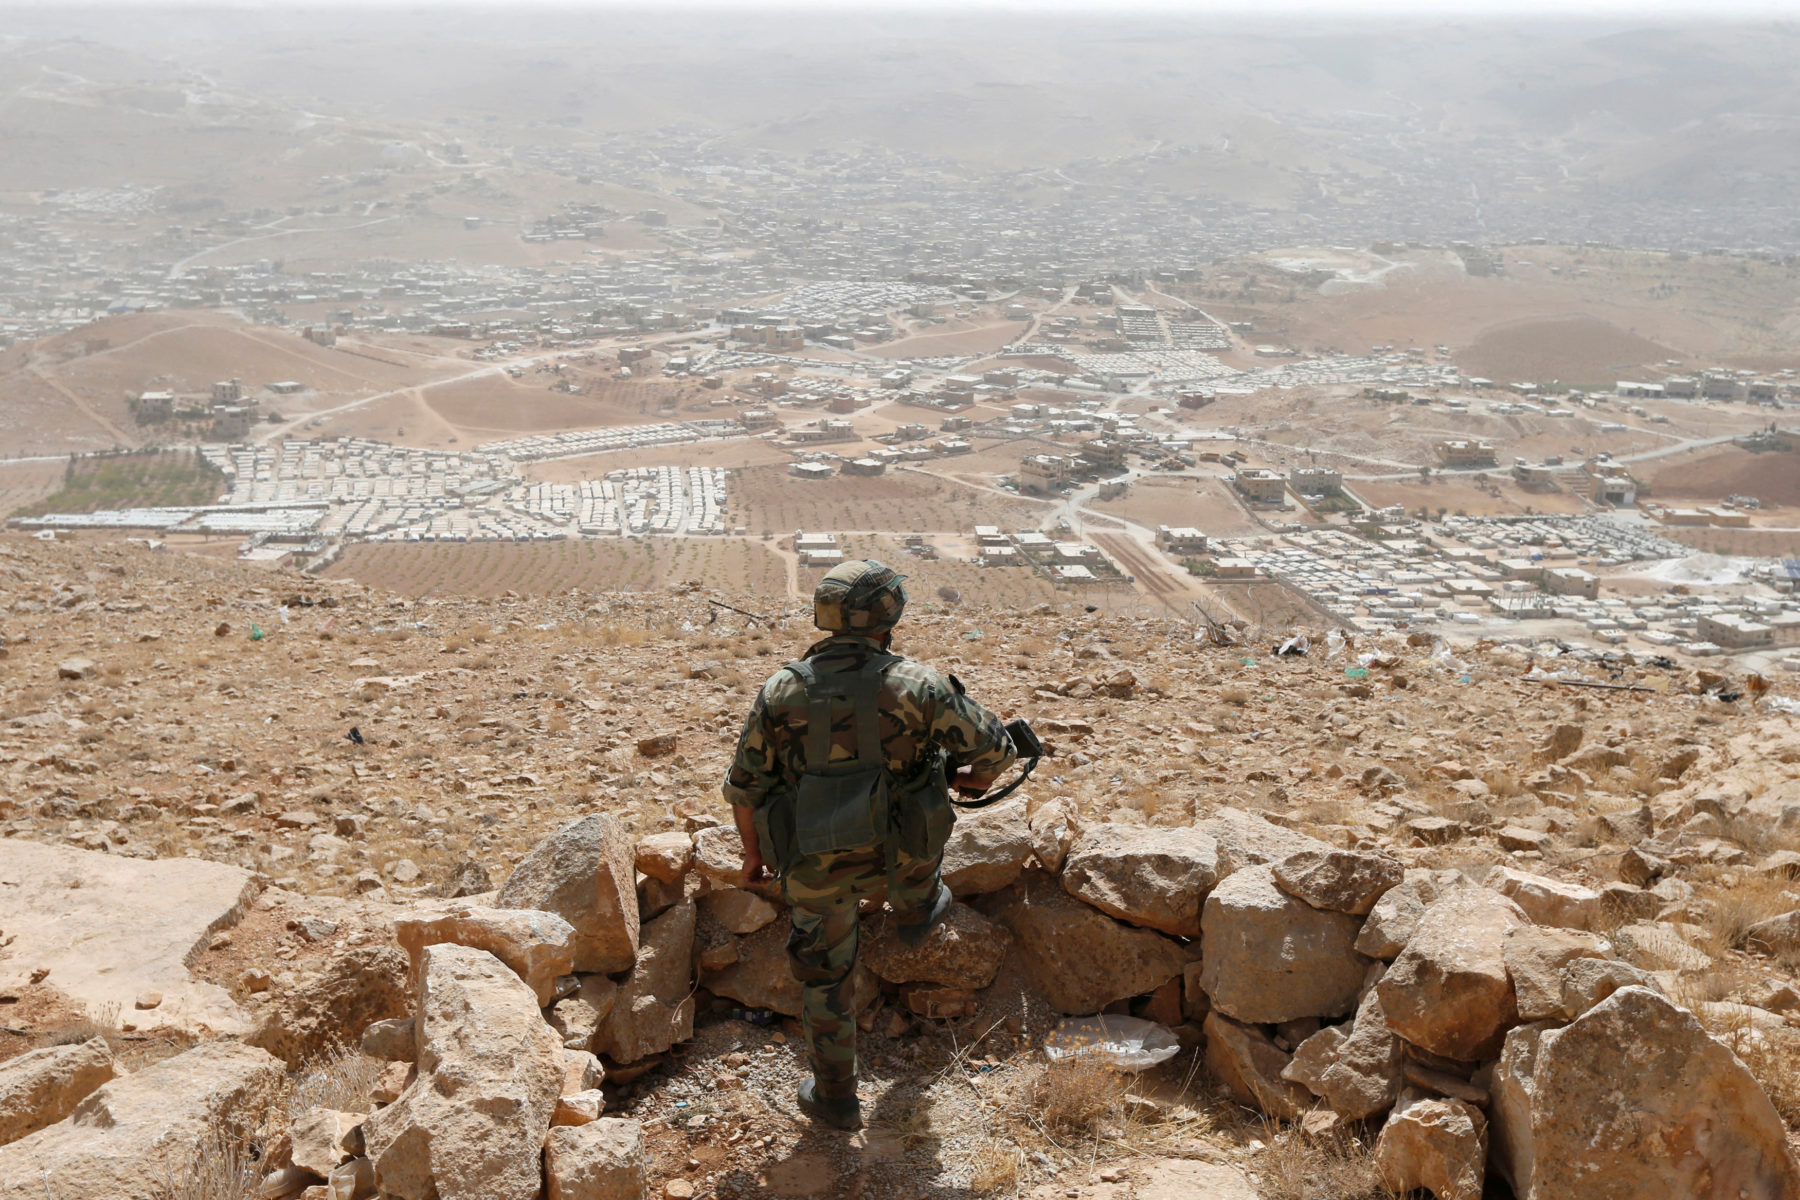 Jed Babbin: Time For A New Red Line In Syria